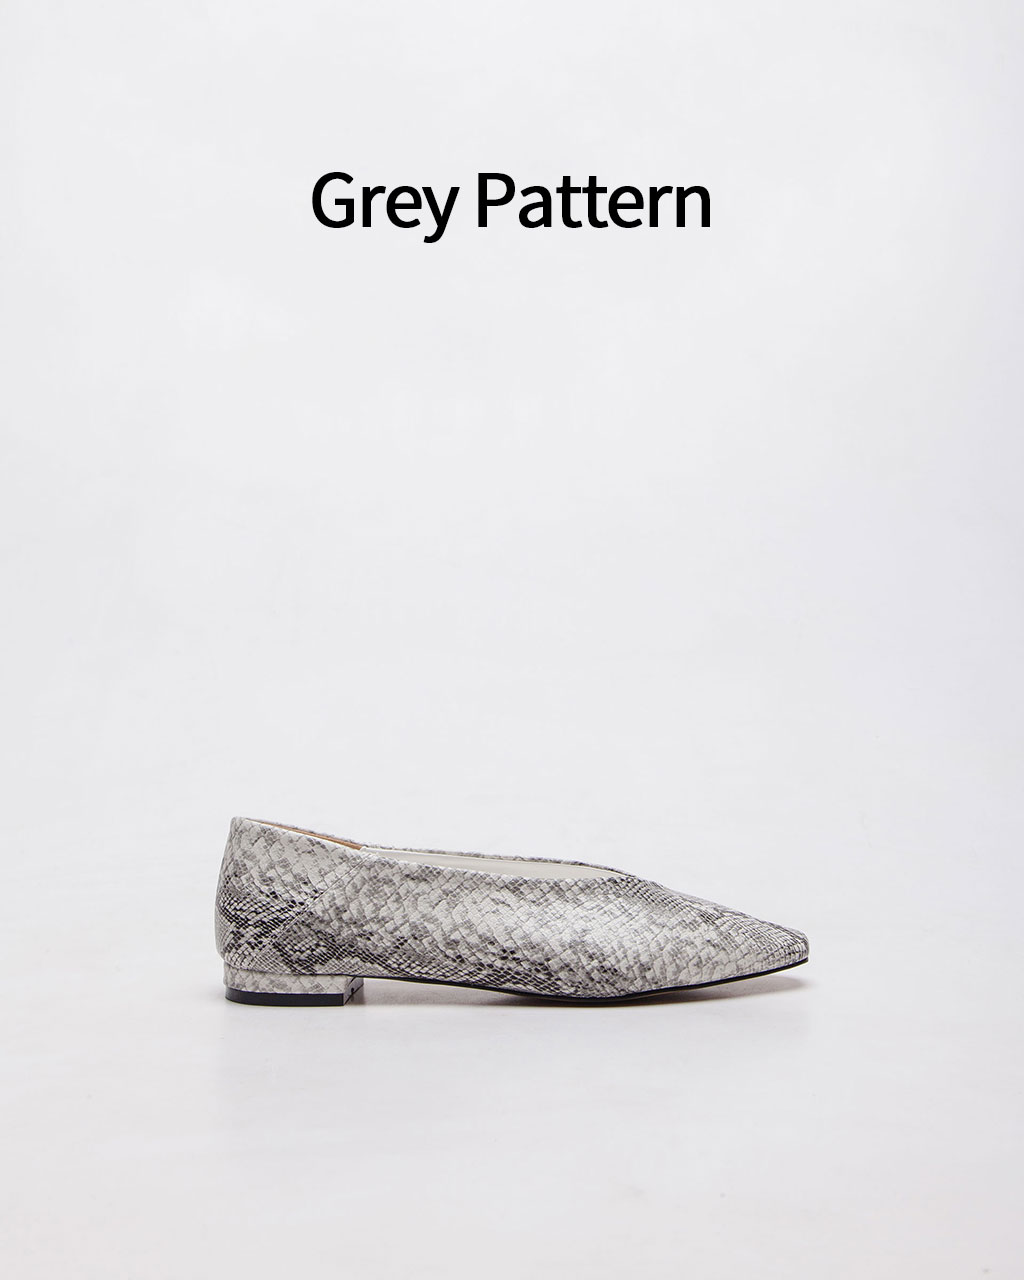 Tagtraume Clever-07 - Grey Pattern(그레이 패턴)